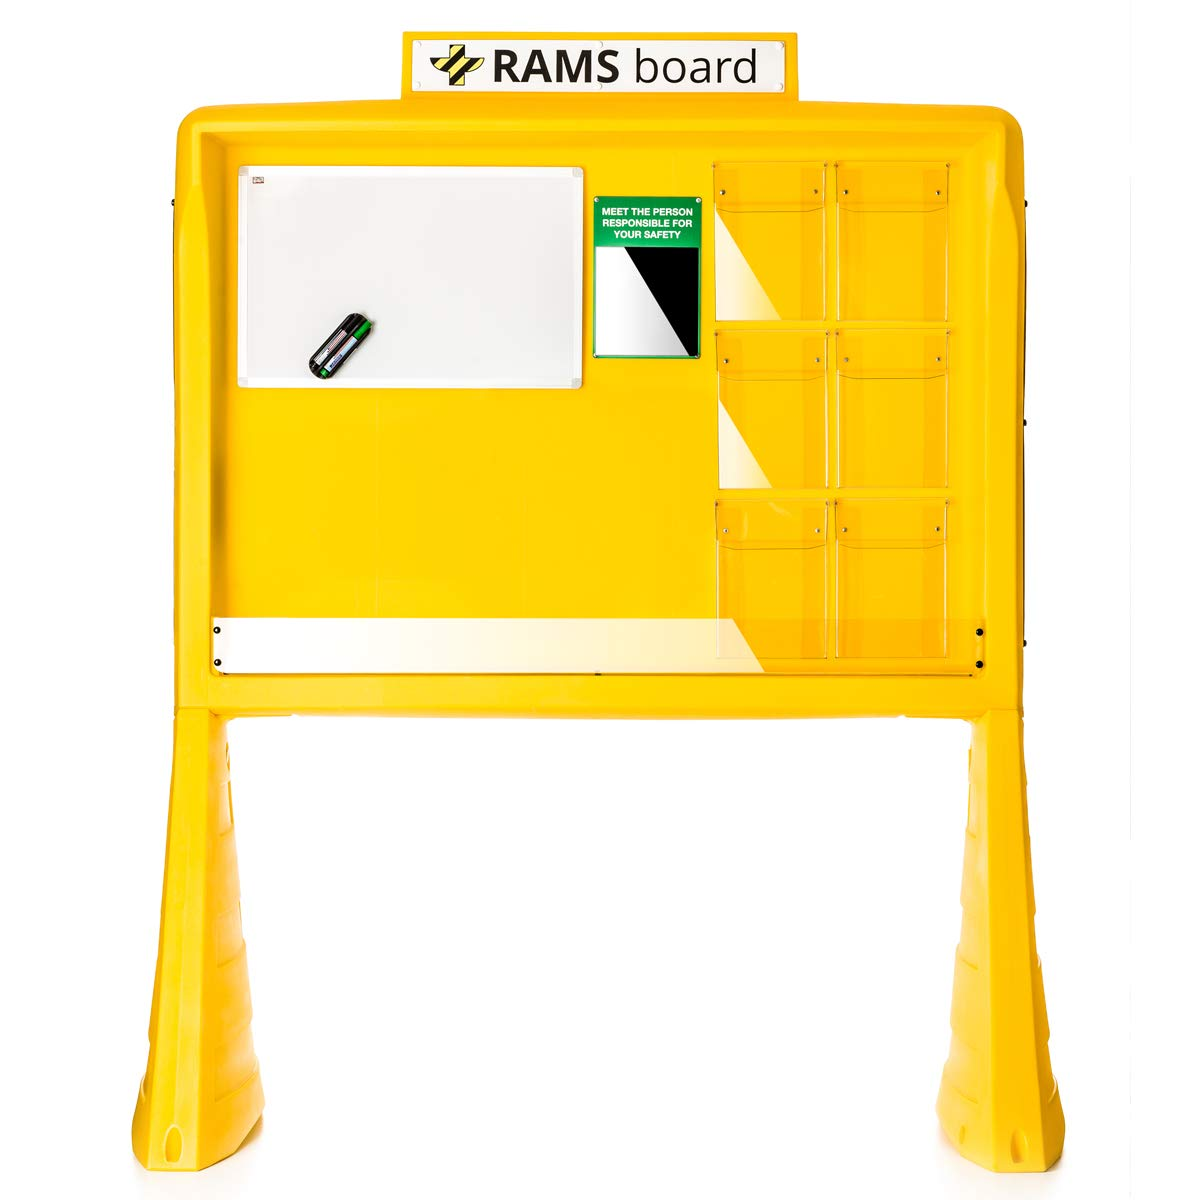 Accuform PBR101YL RAMS Board Safety and Notice Board, Yellow